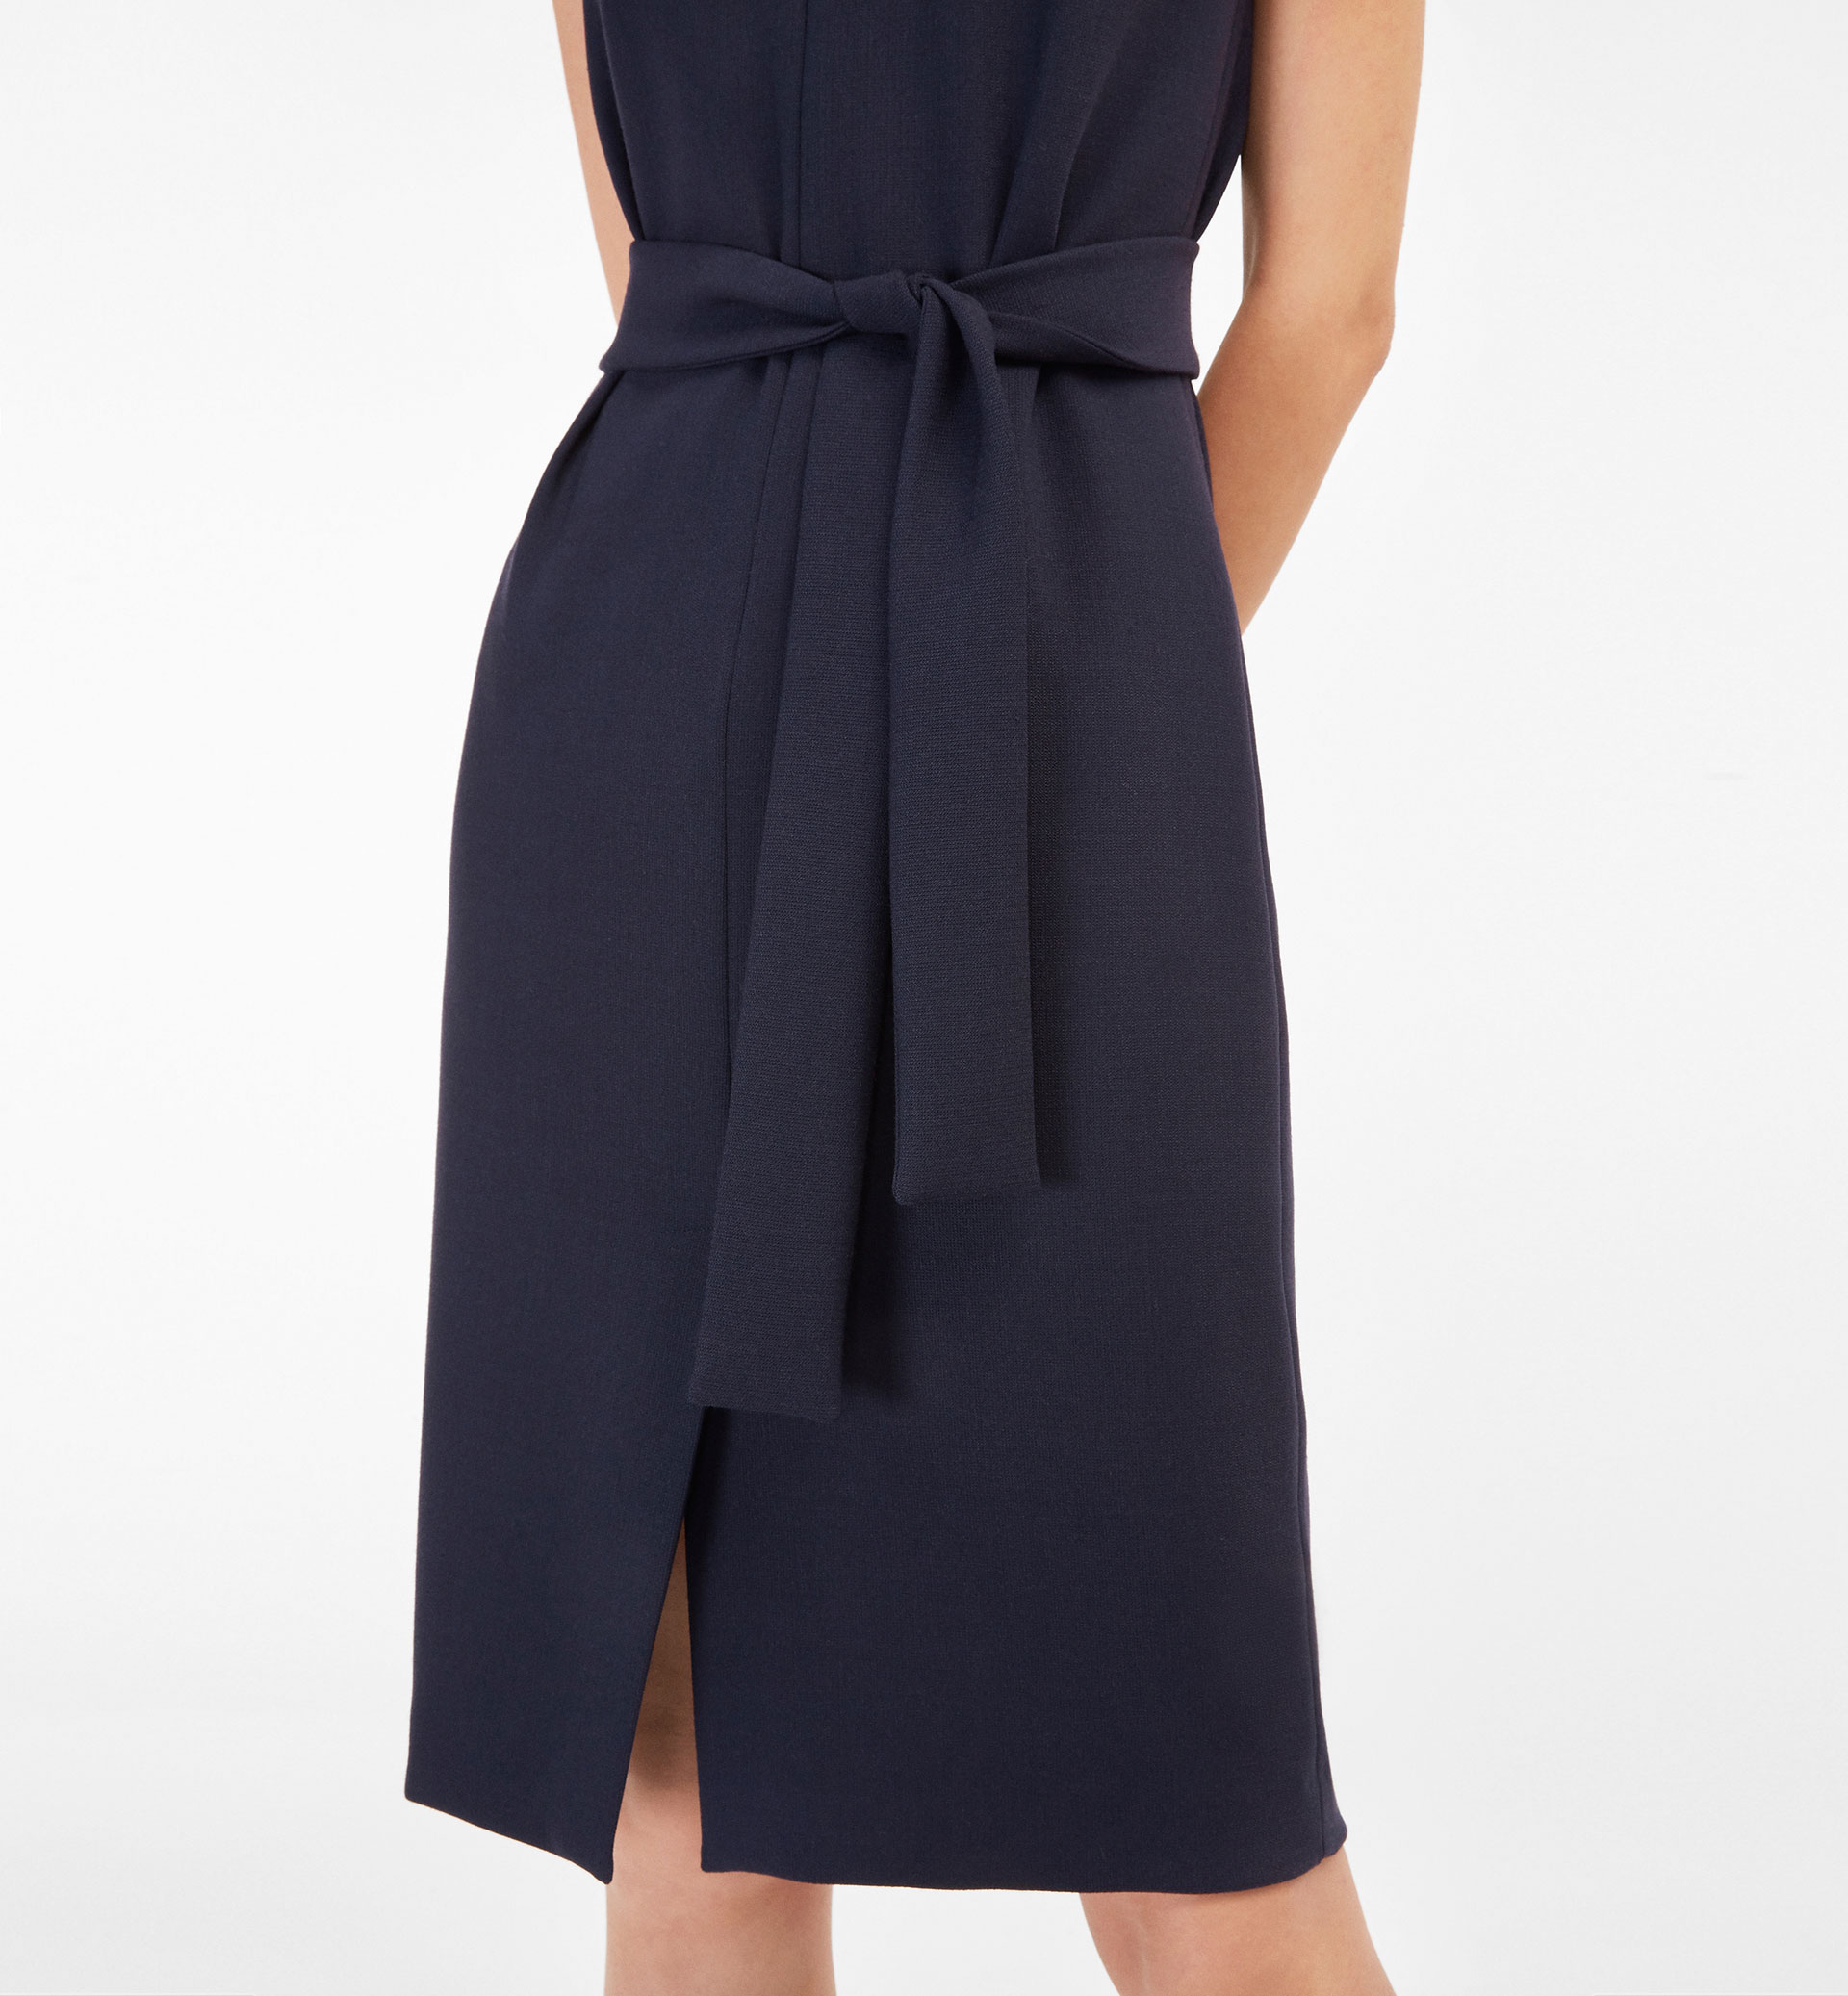 BOW DETAIL NAVY DRESS